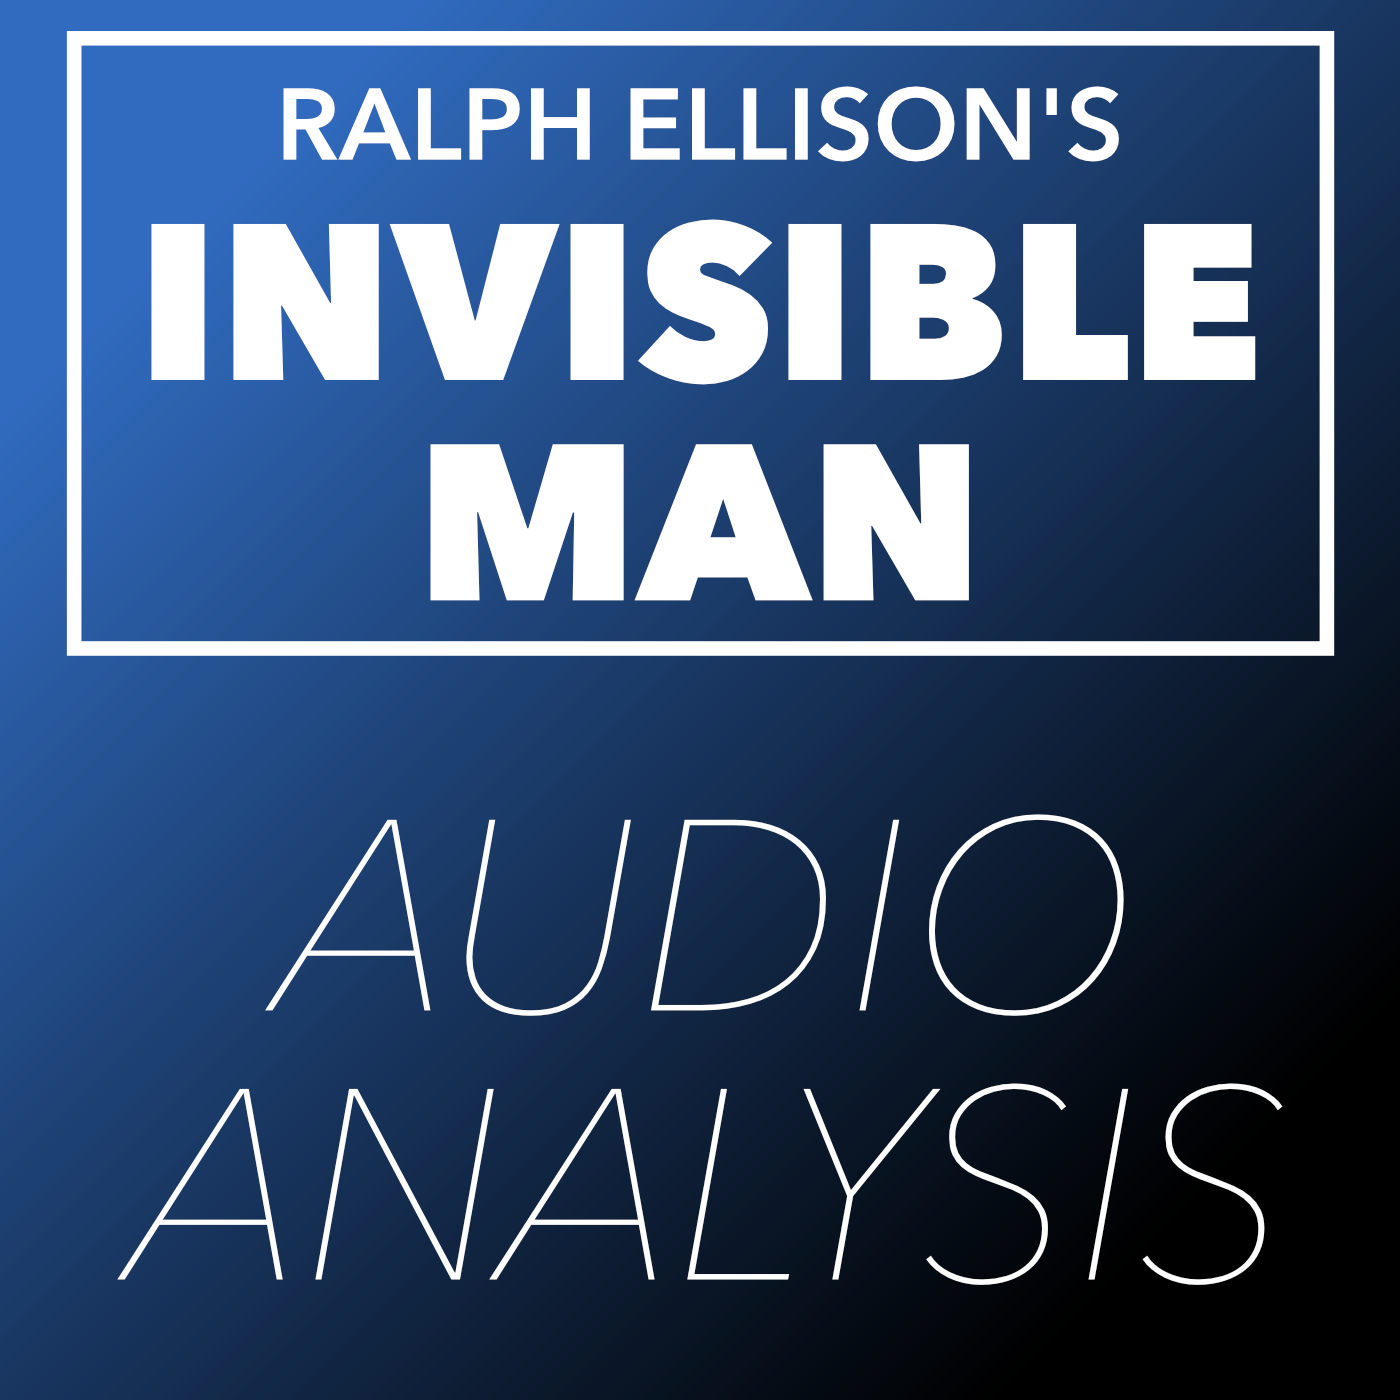 Invisible Man (Audio Analysis) - This is an experimental project I did for an English class in lieu of a traditional paper. I orally analyzed and explored themes of American contradiction in Ralph Ellison's seminal text Invisible Man.Sources Used:-Invisible Man version used- HuffPost Report on Stephon Clark Shooting - USA Today Recording of President Trump Responding to Charlottesville- Marvel's Black Panther Official Trailer- Television Interview with Ralph Ellison (1966)-Background Music - Pray For Me (The Weeknd, Kendrick Lamar) Piano Cover by The Theorist - Background Music - Starboy (The Weeknd) Piano Cover by The Theorist - Background Music - Redbone (Childish Gambino) Piano Cover by The Theorist